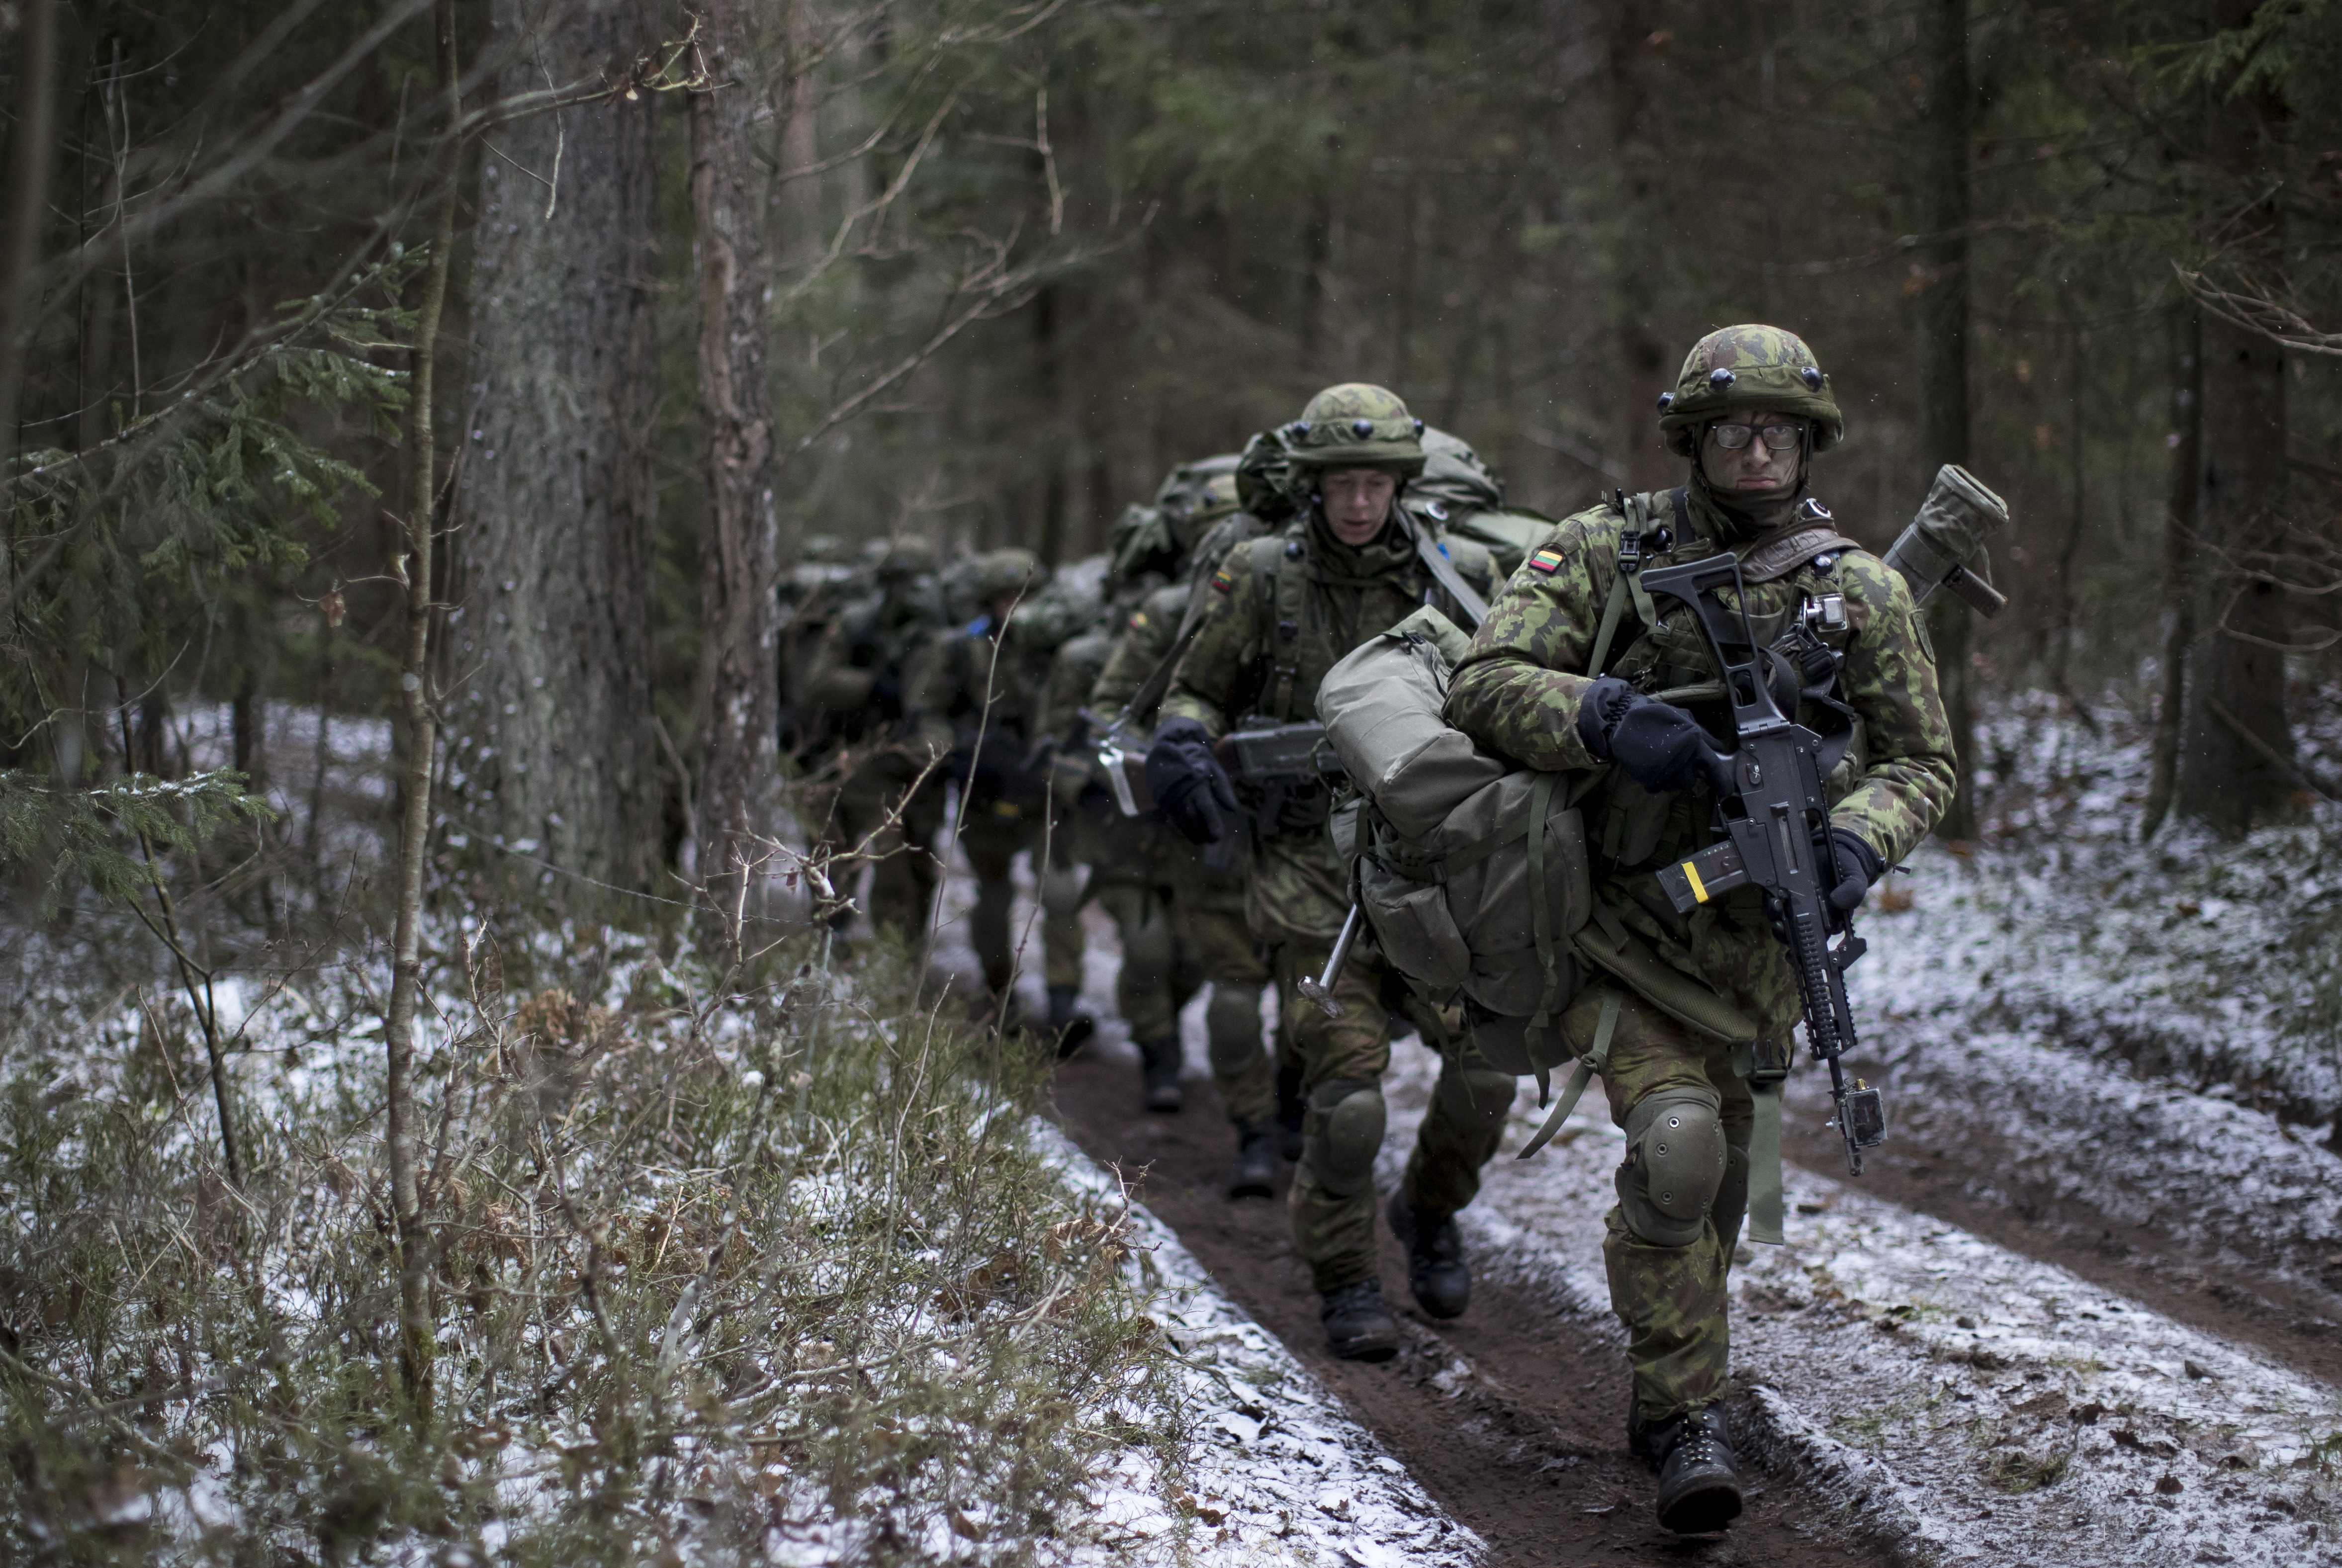 Lithuanian troops practice during a NATO military exercise, 'Iron Sword,' at the Rukla military base some 130 km. (80 miles) west of the capital Vilnius, Lithuania, on Monday, Nov. 28, 2016. (AP Photo/Mindaugas Kulbis)